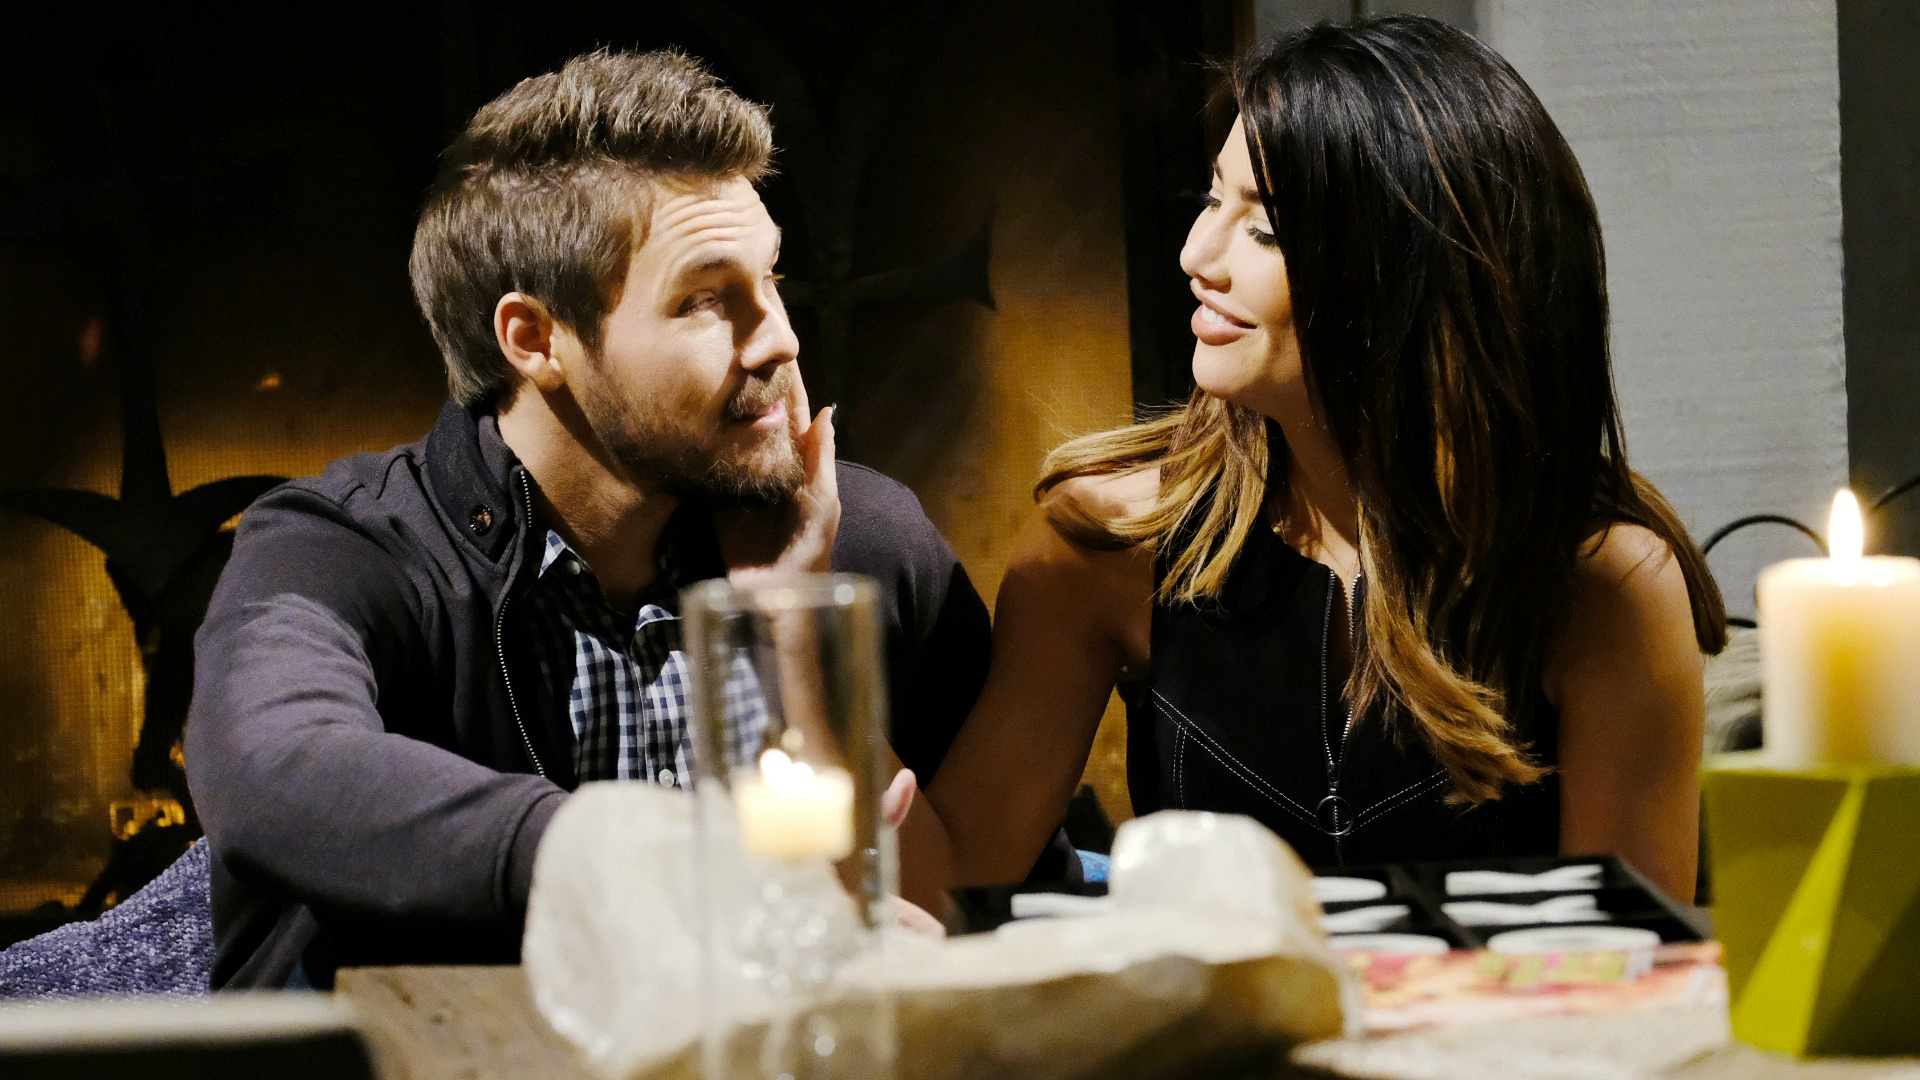 Steffy comes up with a creative way to break bad news to Liam.